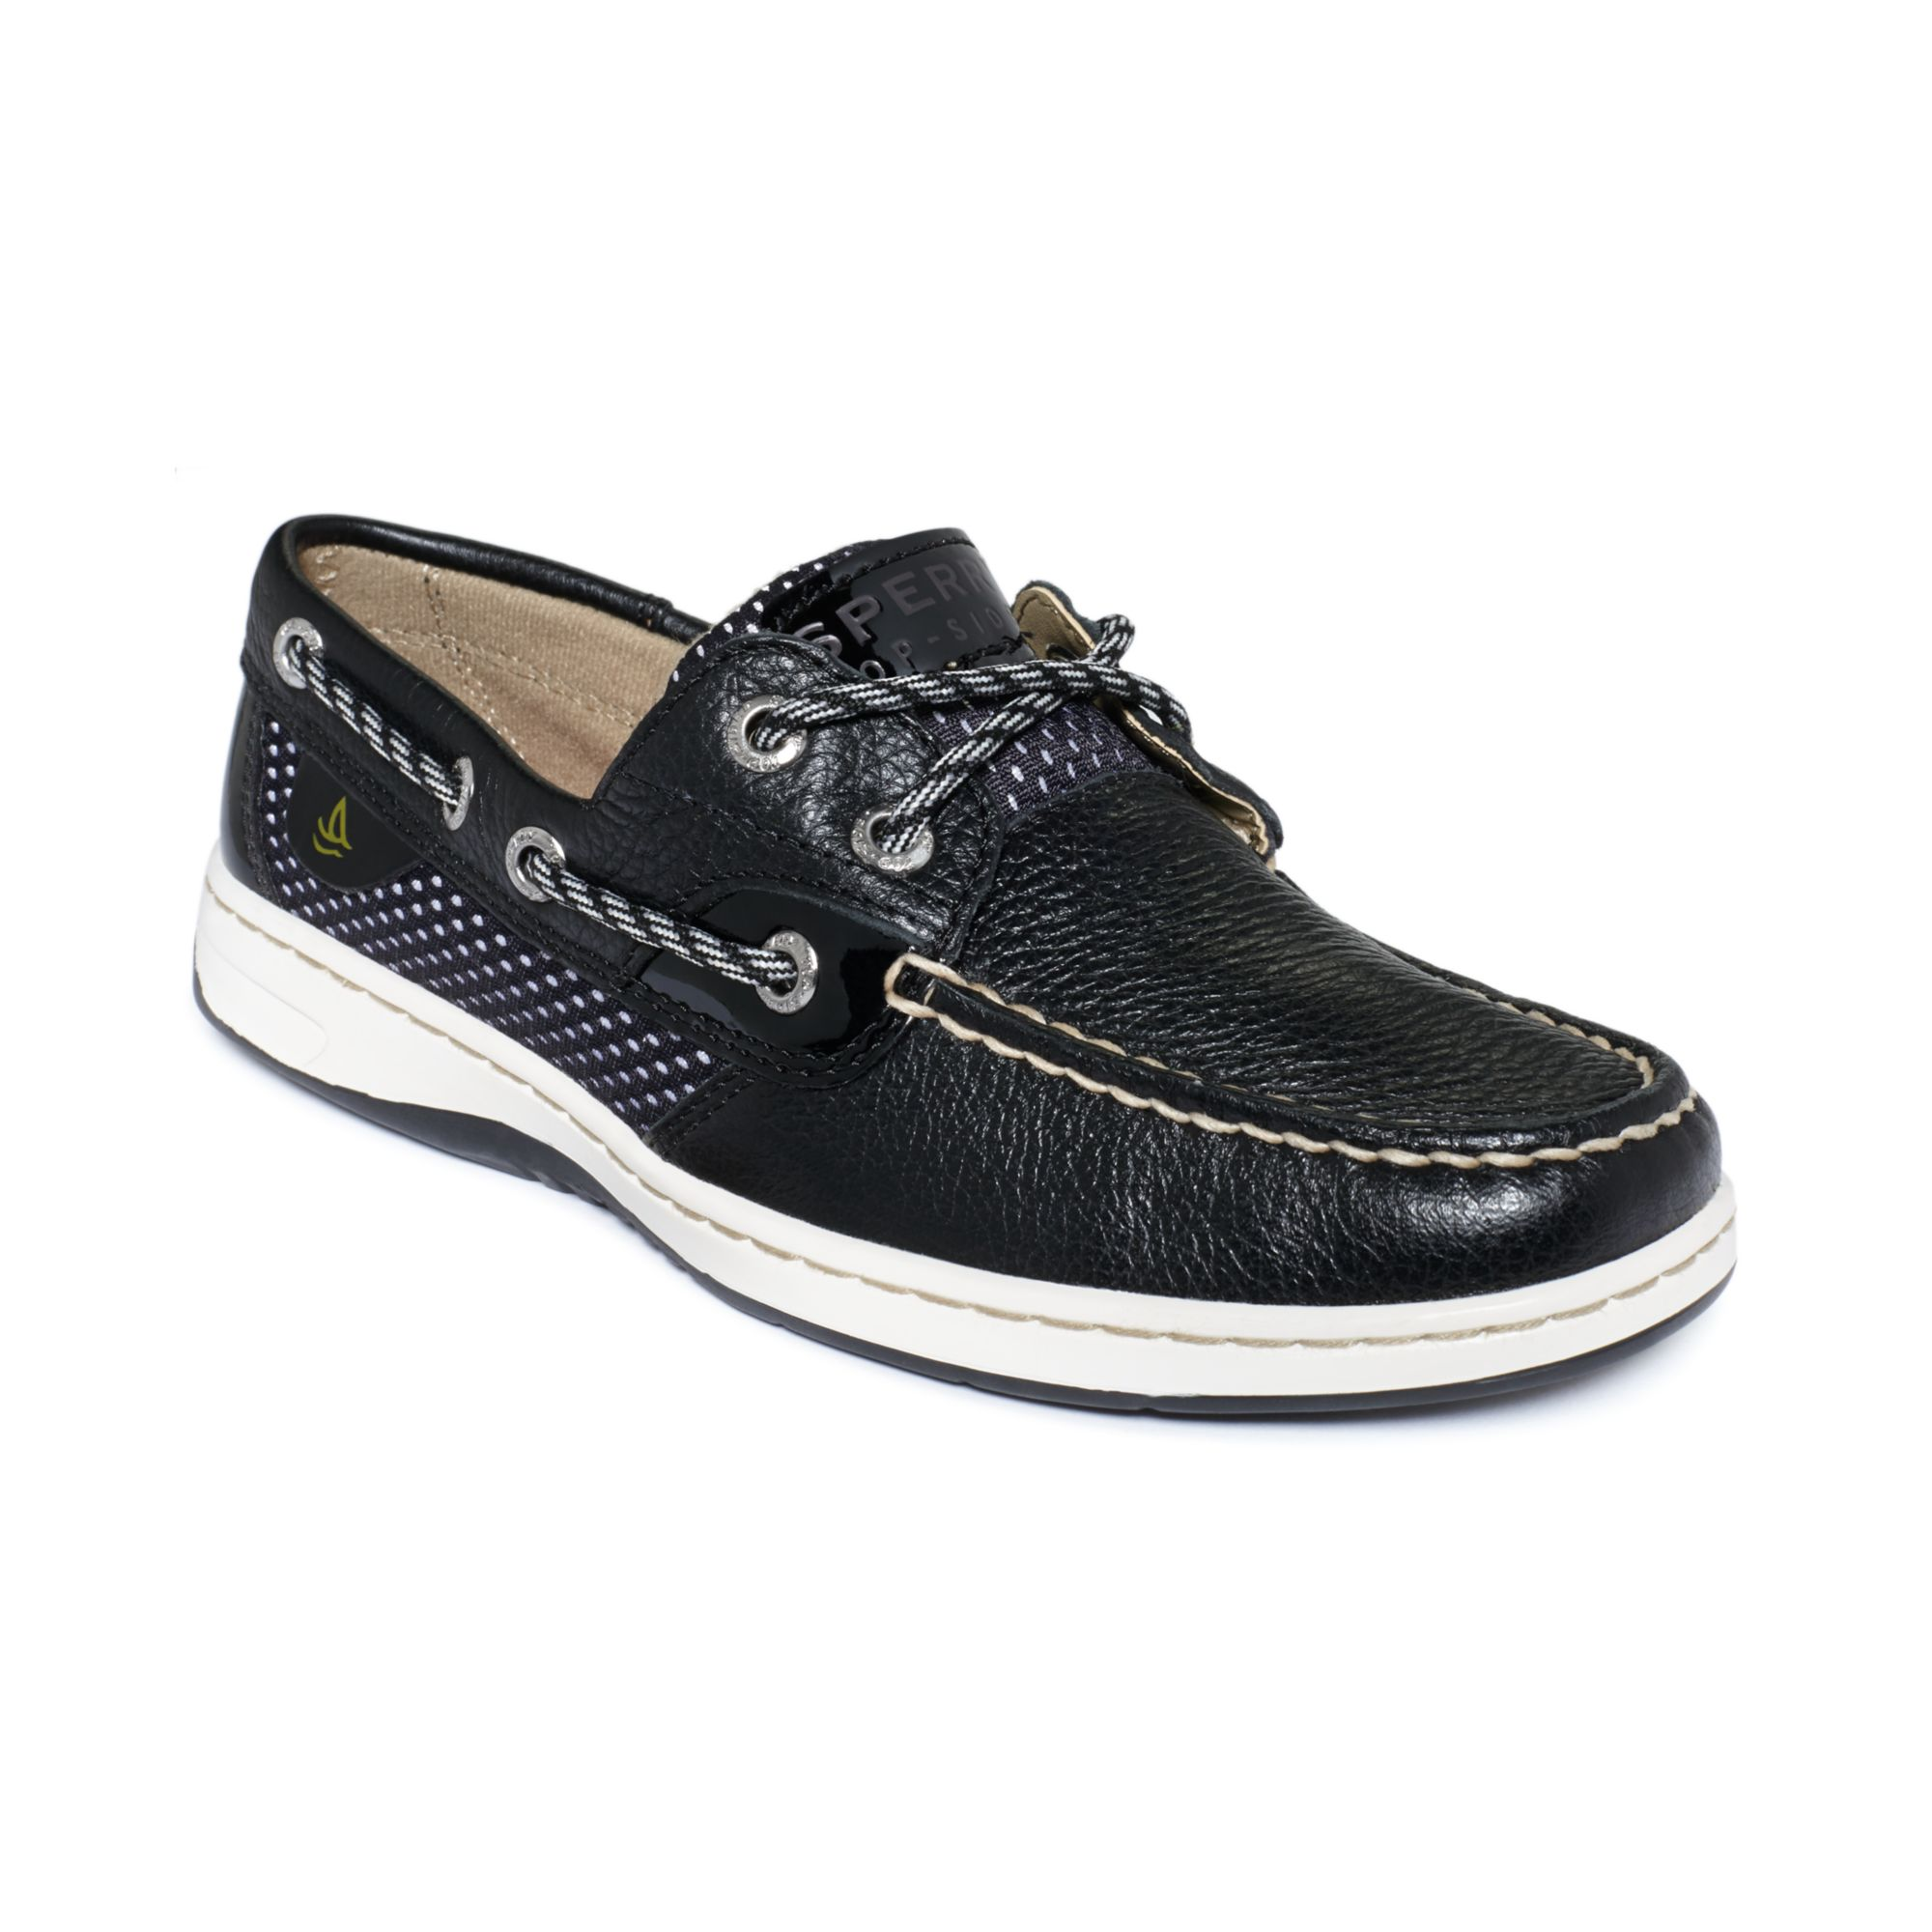 Sperry Top-sider Sperry Women'S Bluefish Boat Shoes in Black (Black